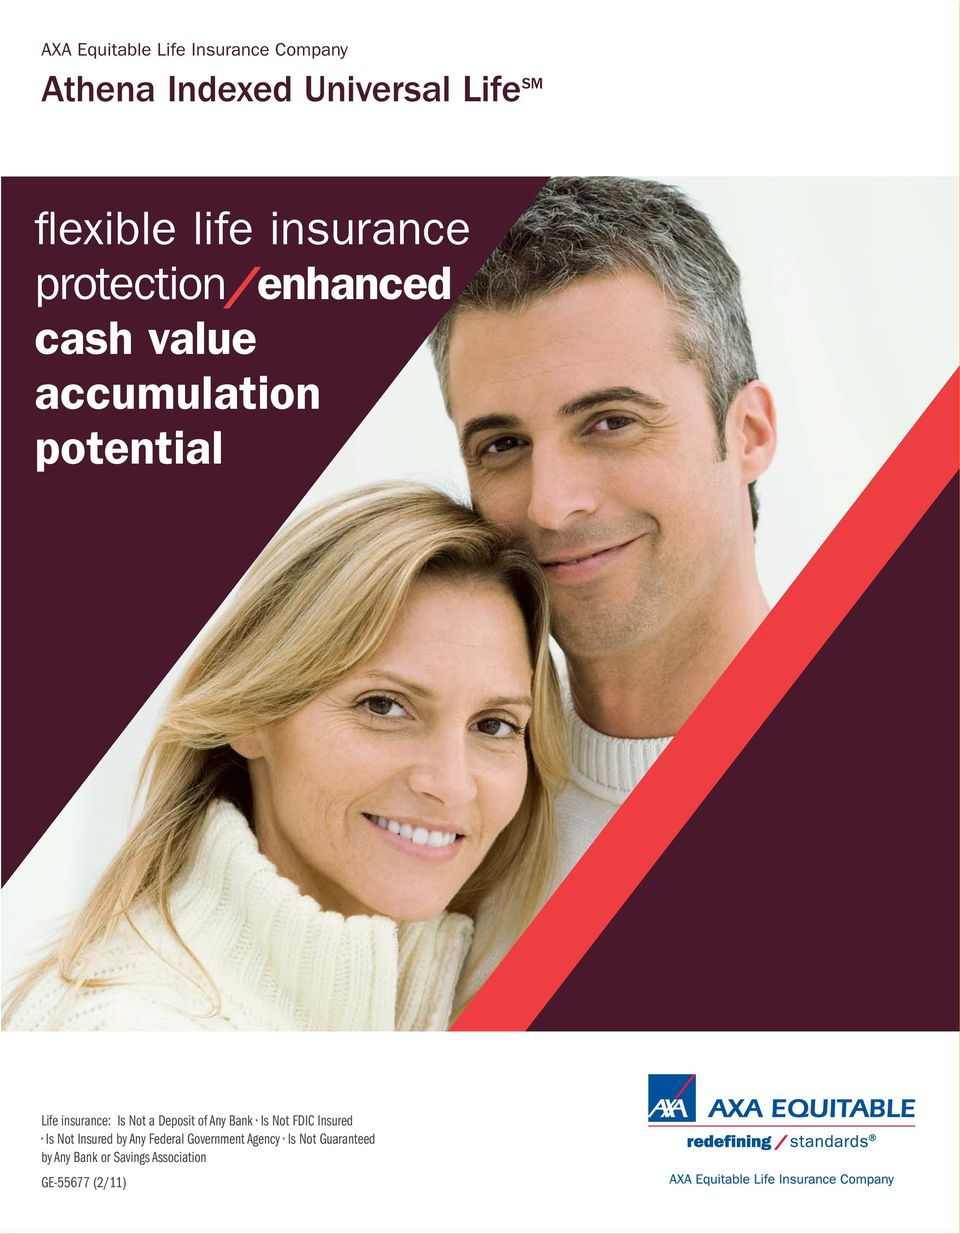 flexible life insurance protection